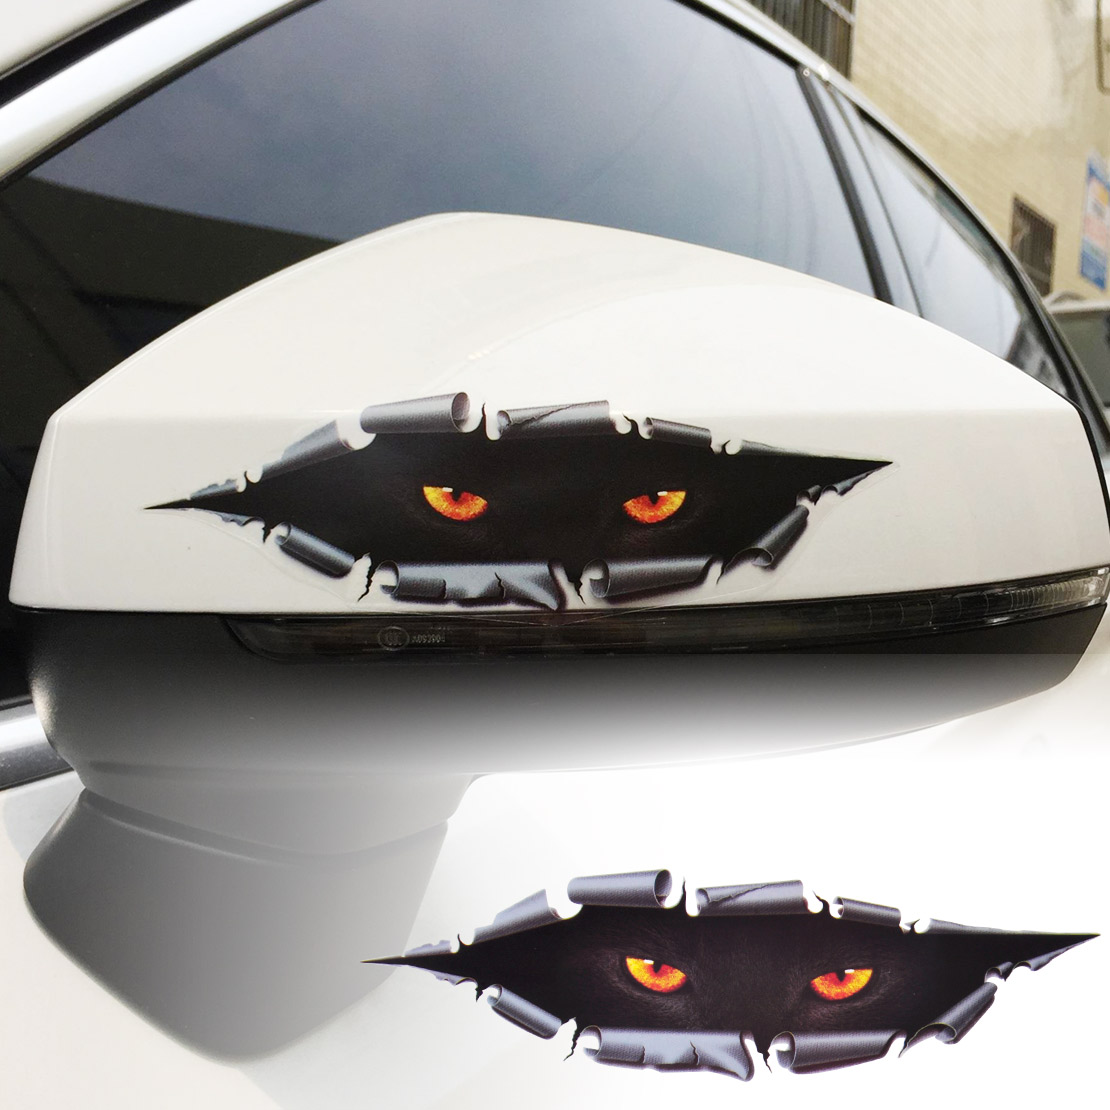 New Car Styling Sticker Funny 3D Simulation Peeking Eye Monster Leopard Decal Car SUV Window Whole Body Cover for All Cars SUV high quality alaskan malamute retriever vinyl window dog decal sticker for car suv body